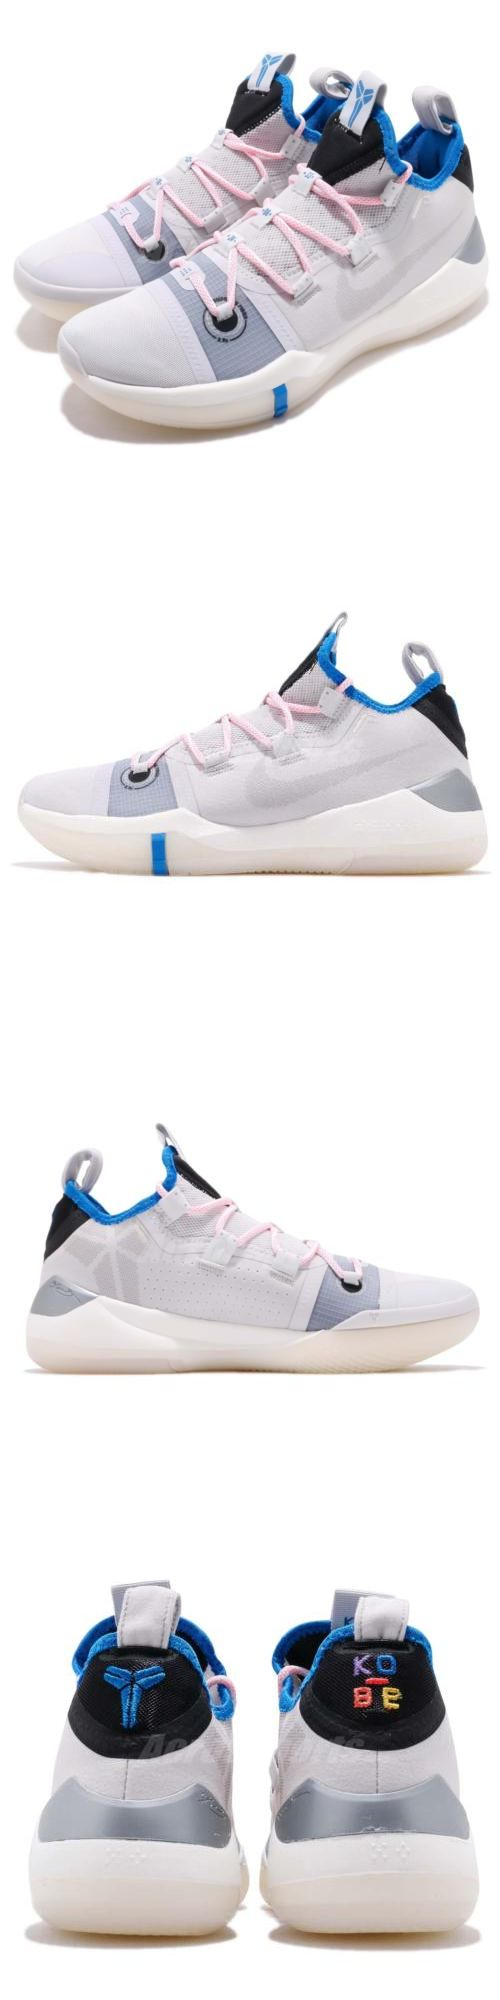 01389c348 Clothing Shoes and Accessories 158963  Nike Kobe A.D. Ep Soft Pink Grey  Blue Kobe Bryant